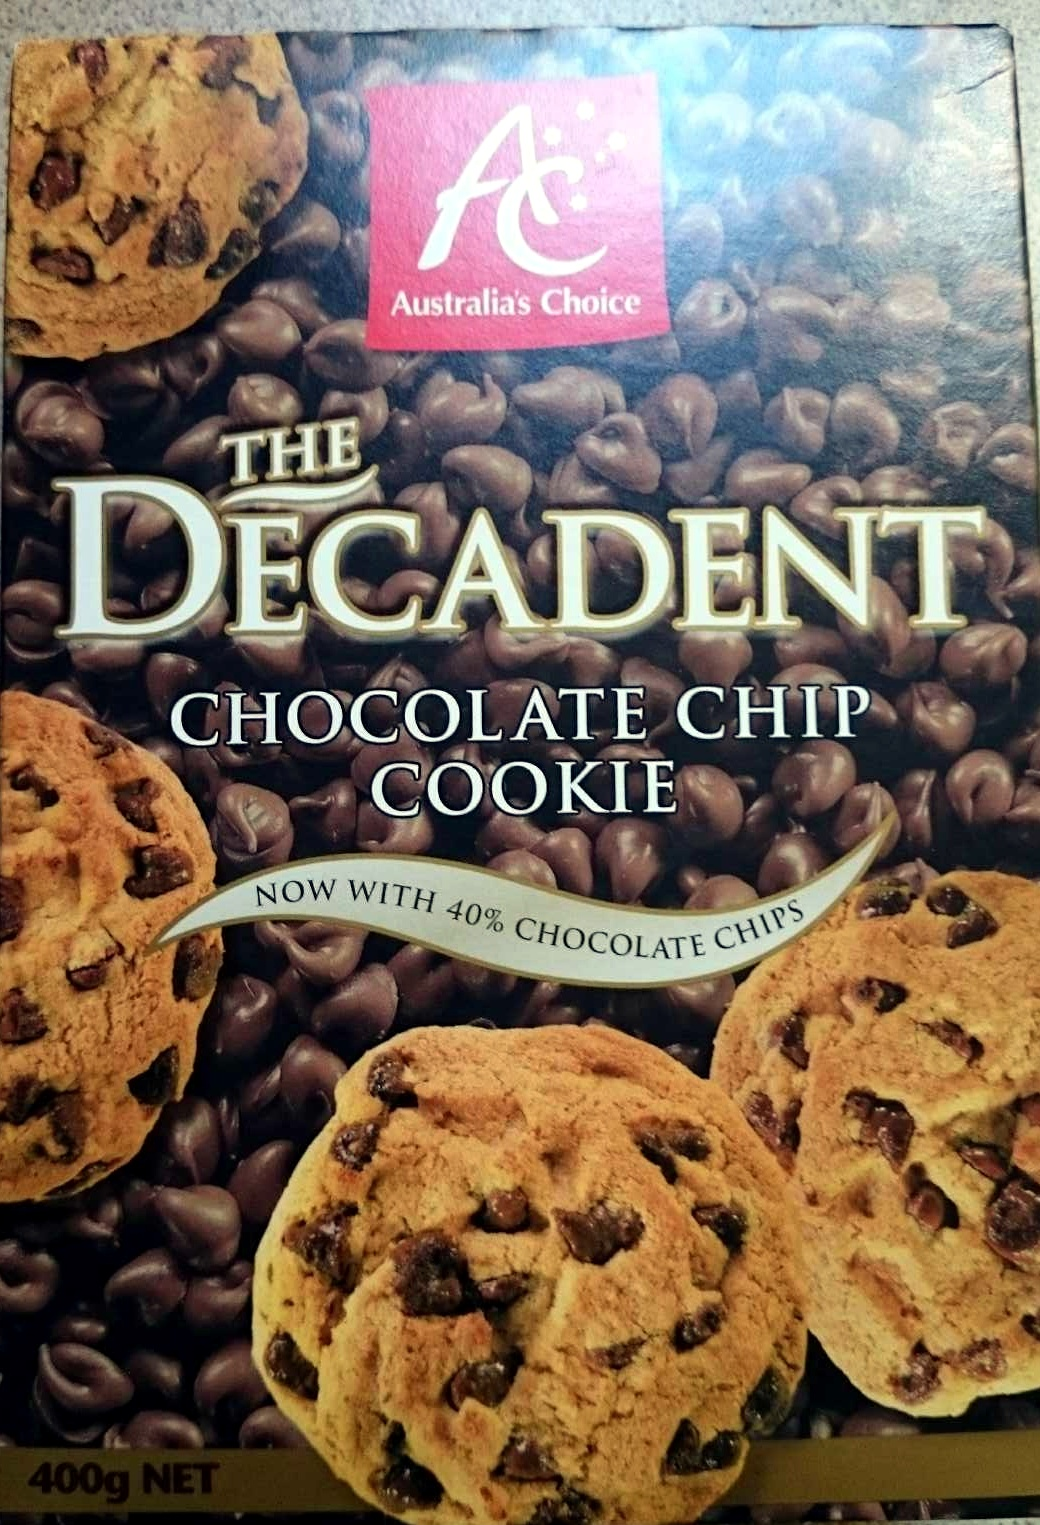 The Decadent chocolate Chip Cookie - Product